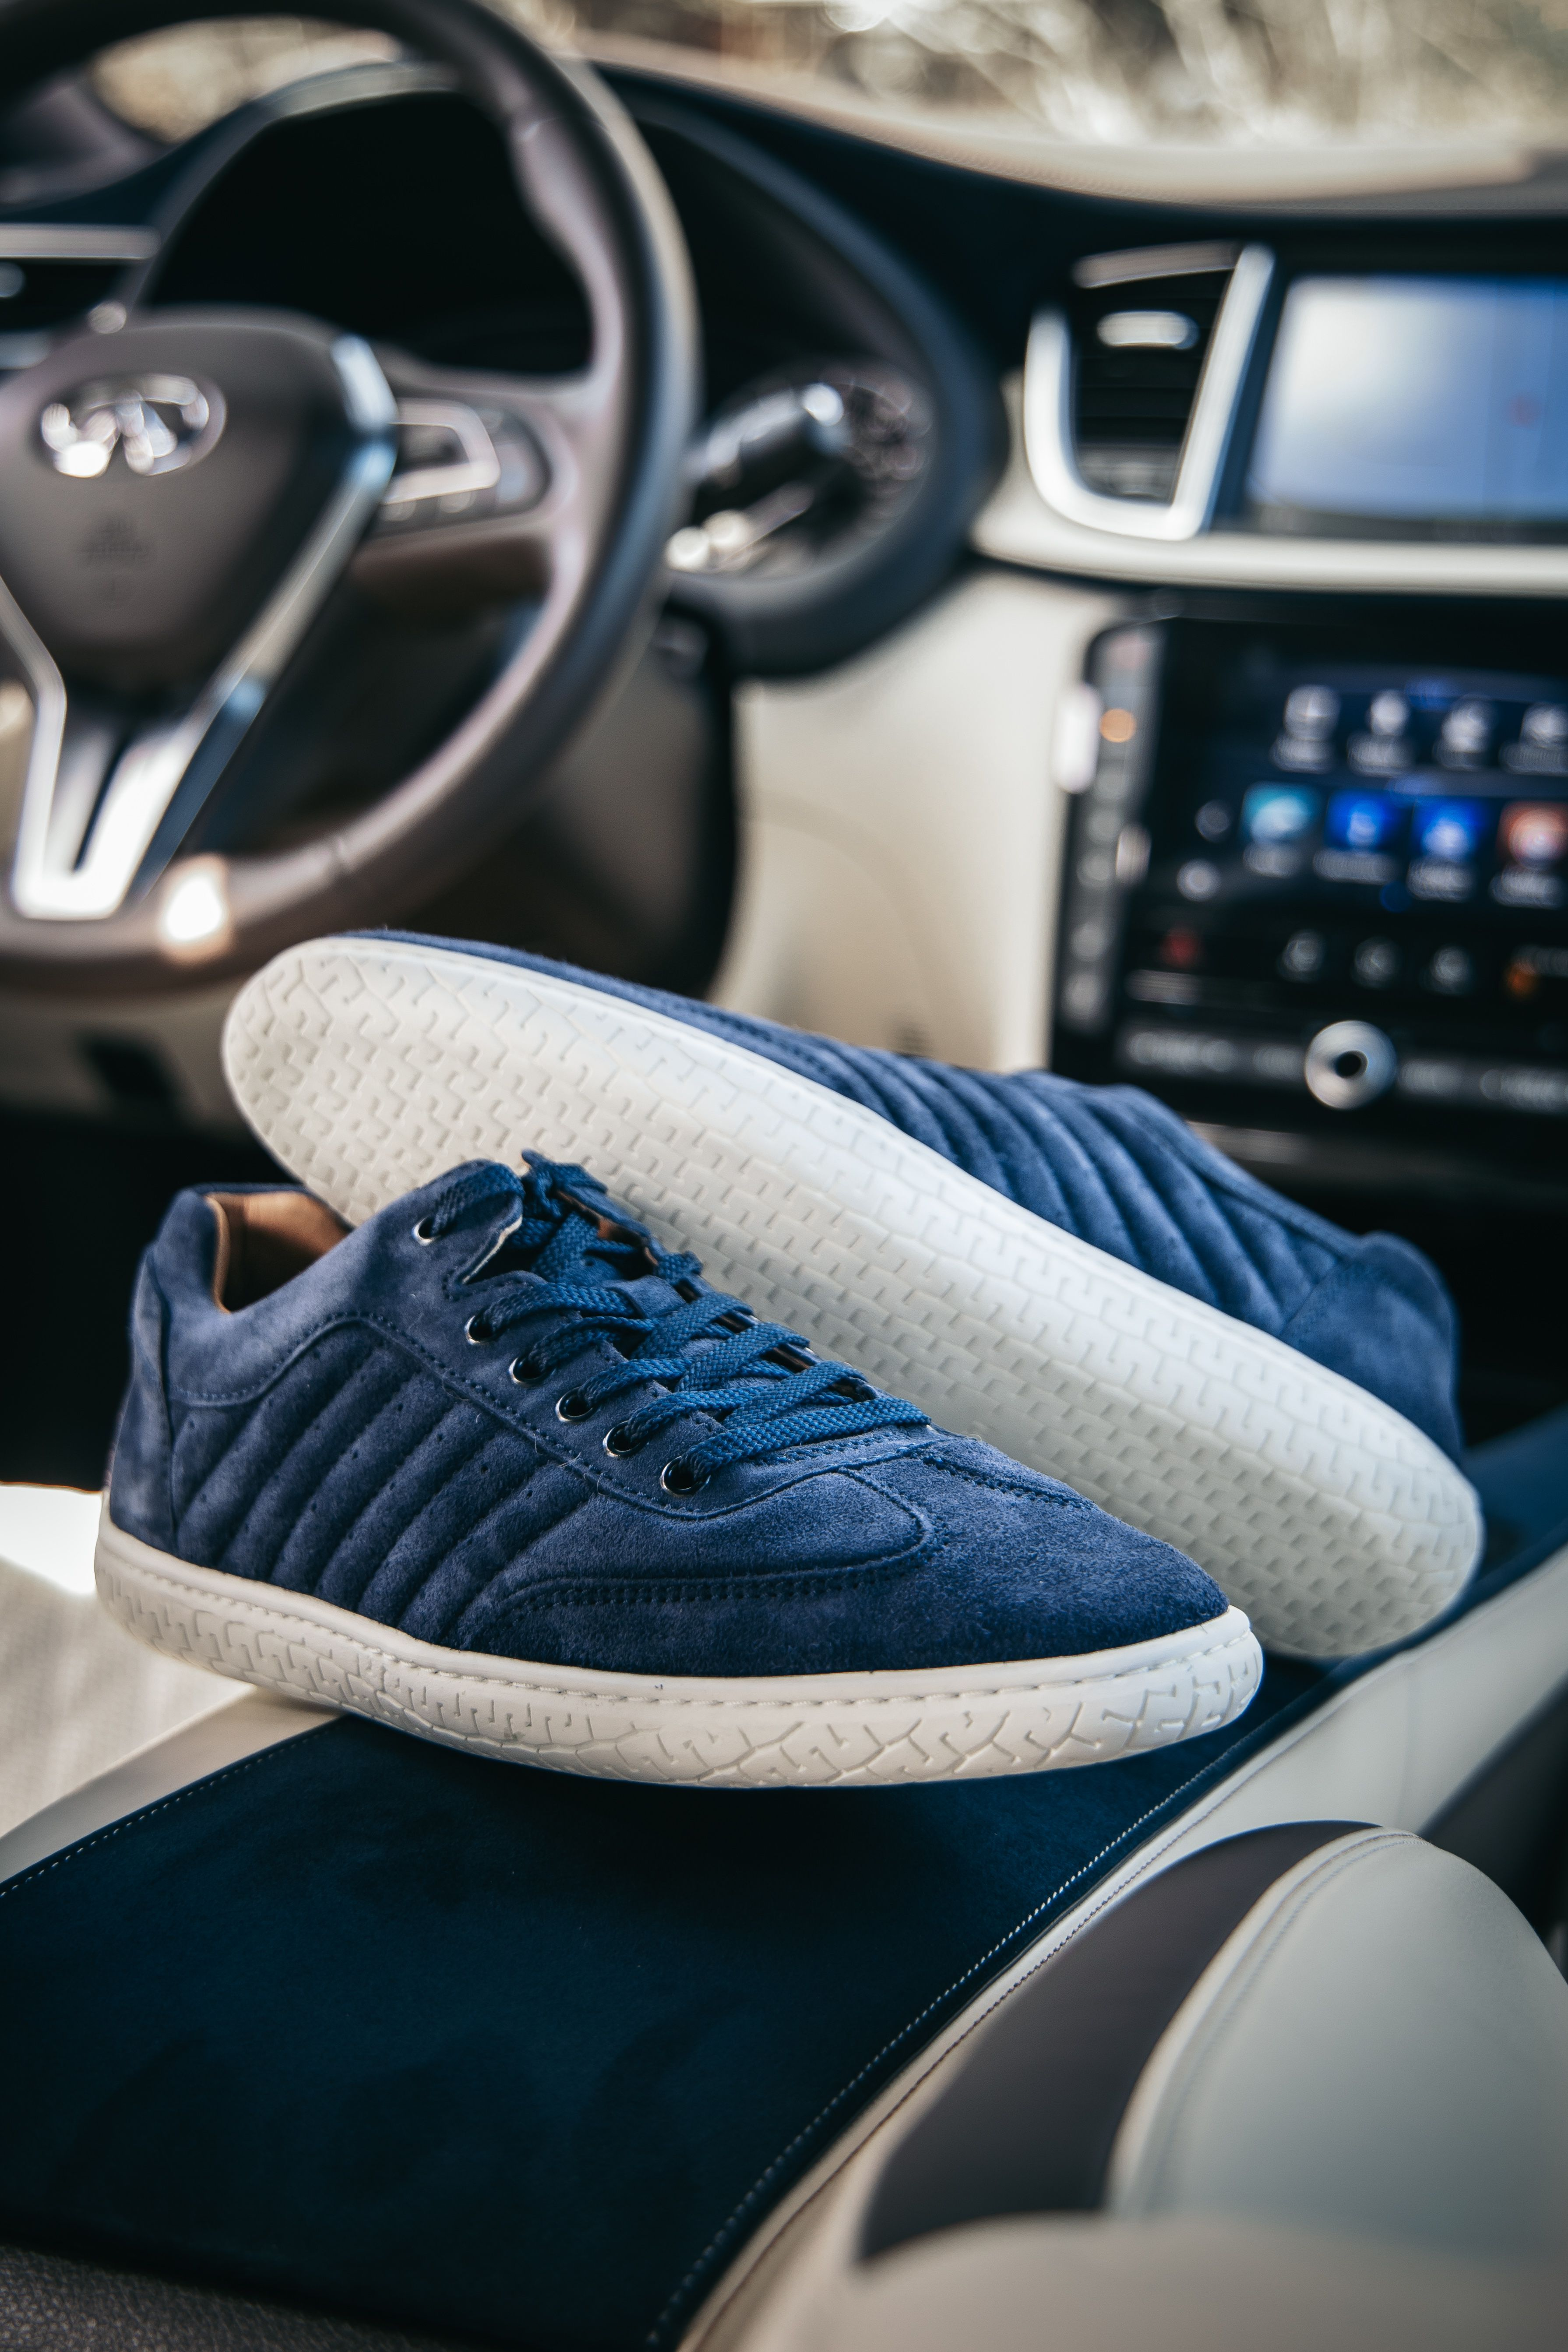 ad04b7e2e2 50 Cool Gifts for Car Lovers for 2019 - Best Presents for Car Guys